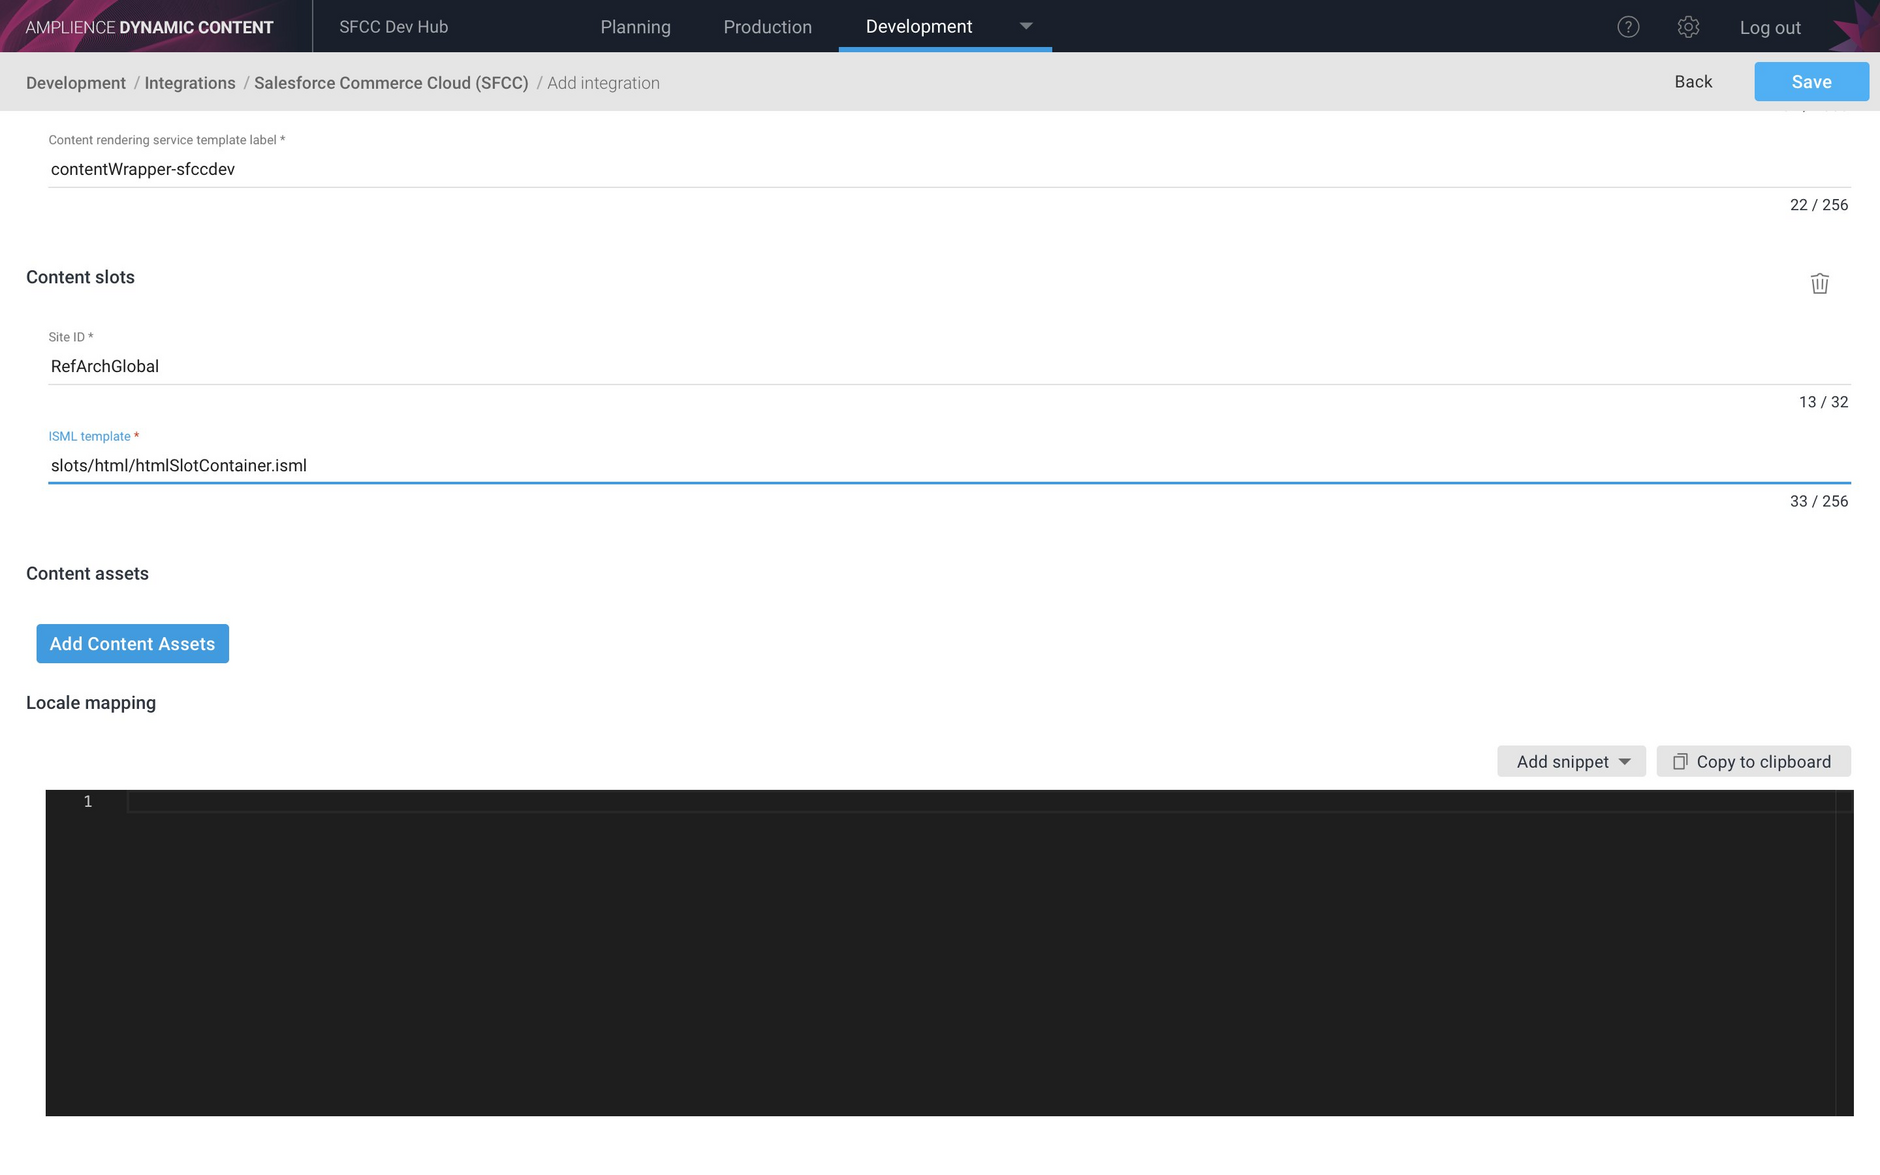 Setting up the siteid and ISML template for a content slot integration